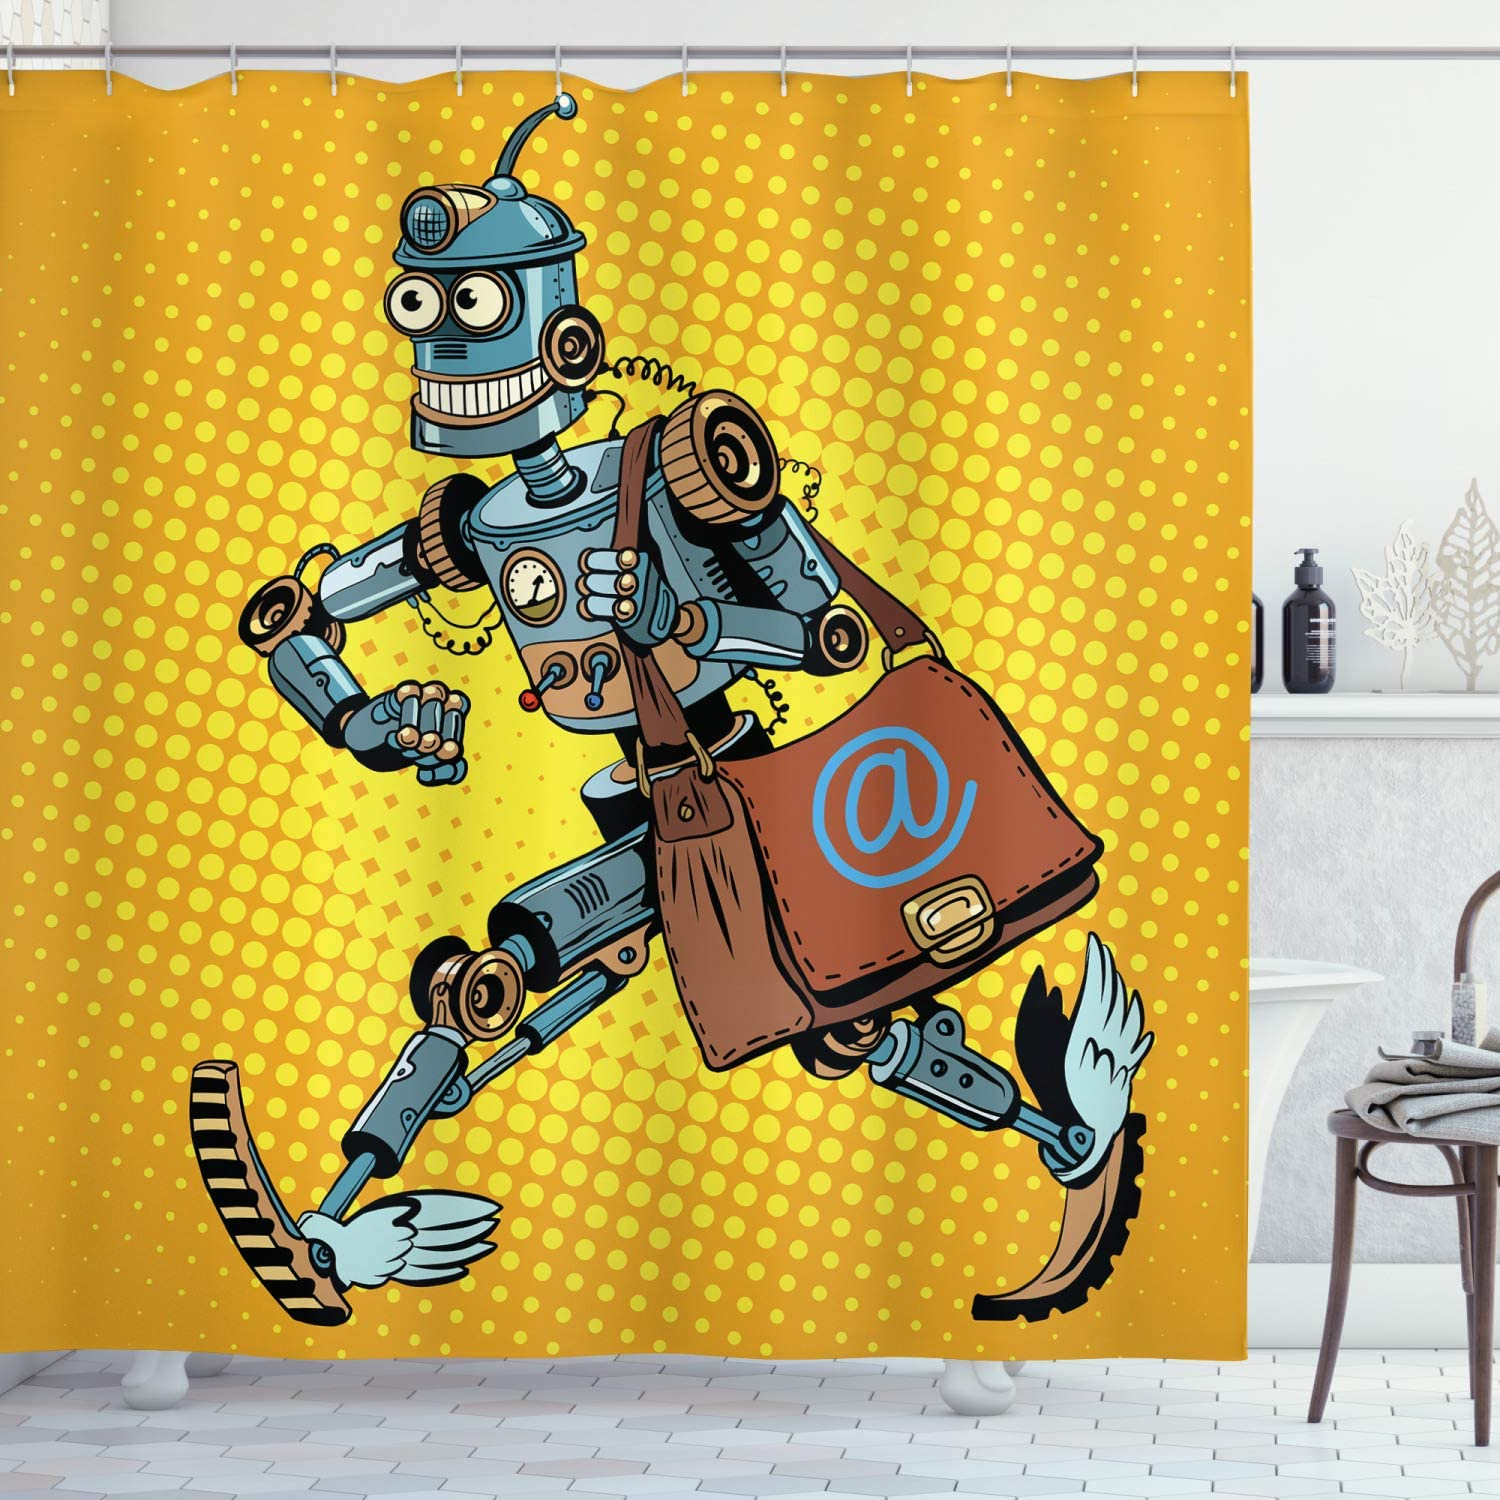 "Ambesonne Retro Shower Curtain, Pop Art Comic Book Style Robot Mailman Vintage Science Fiction Design, Cloth Fabric Bathroom Decor Set with Hooks, 70"" Long, Yellow and Pale Blue"